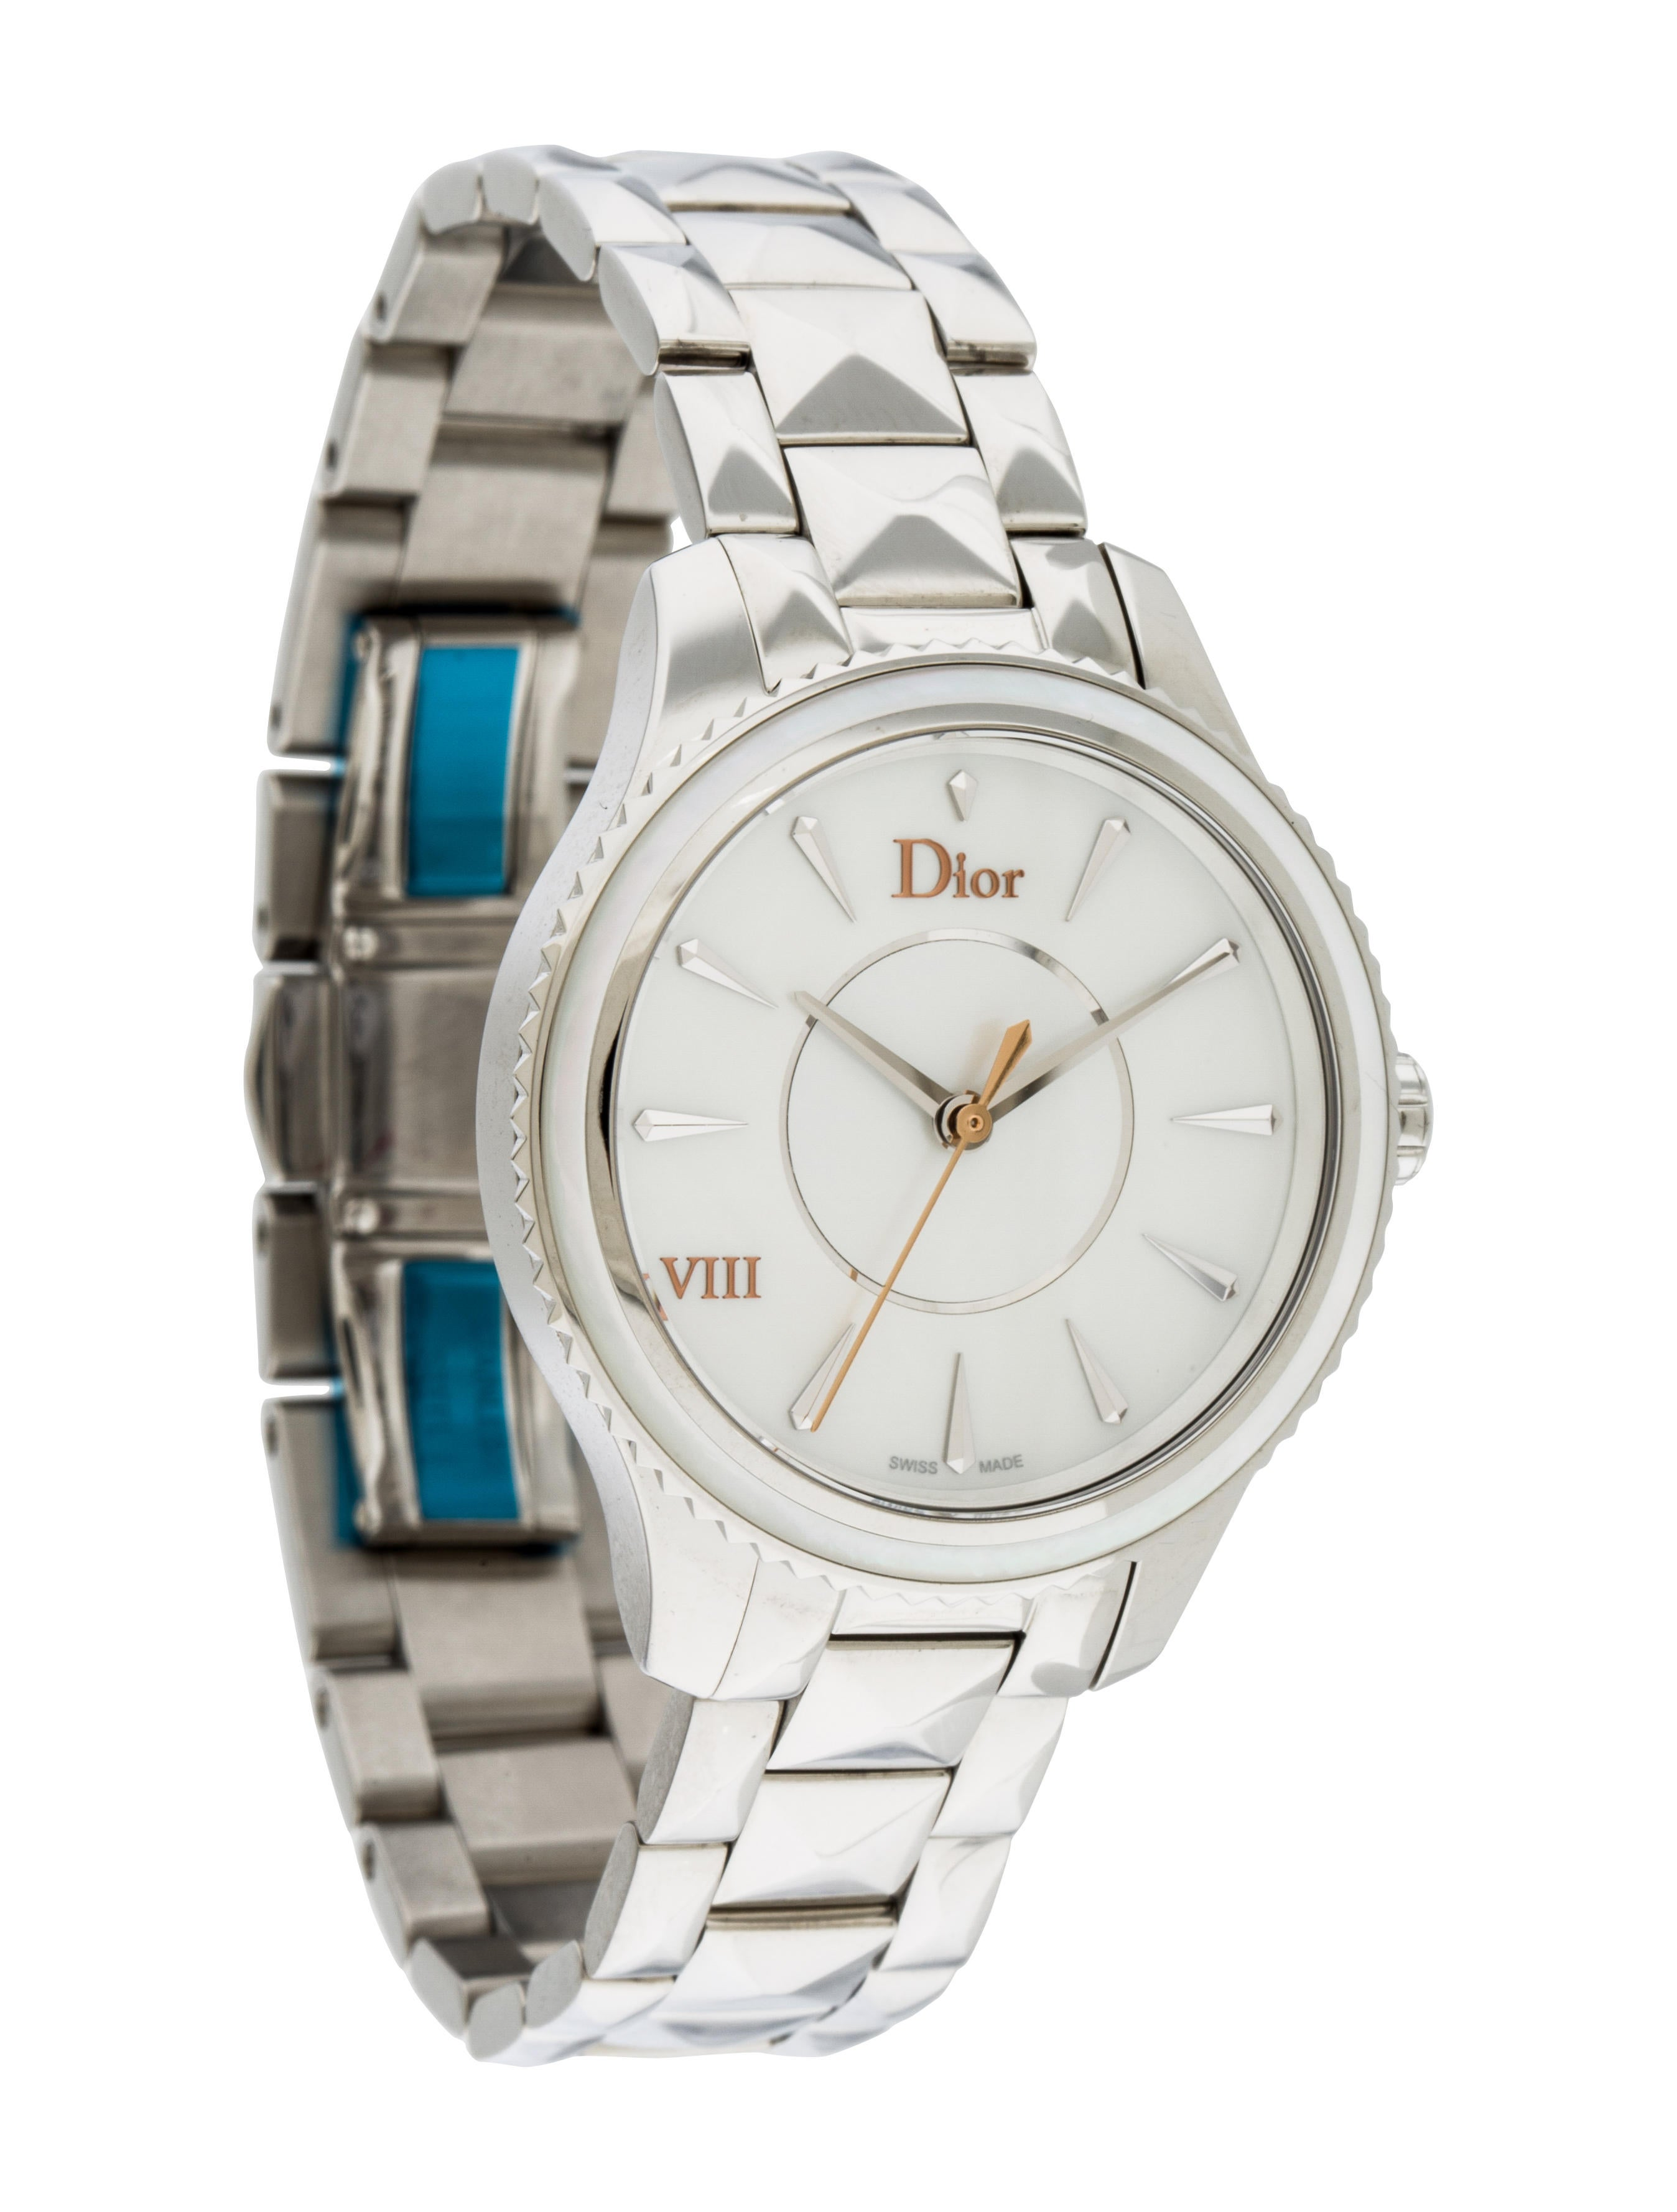 Christian dior viii montaigne watch bracelet chr58059 the realreal for Christian dior watches